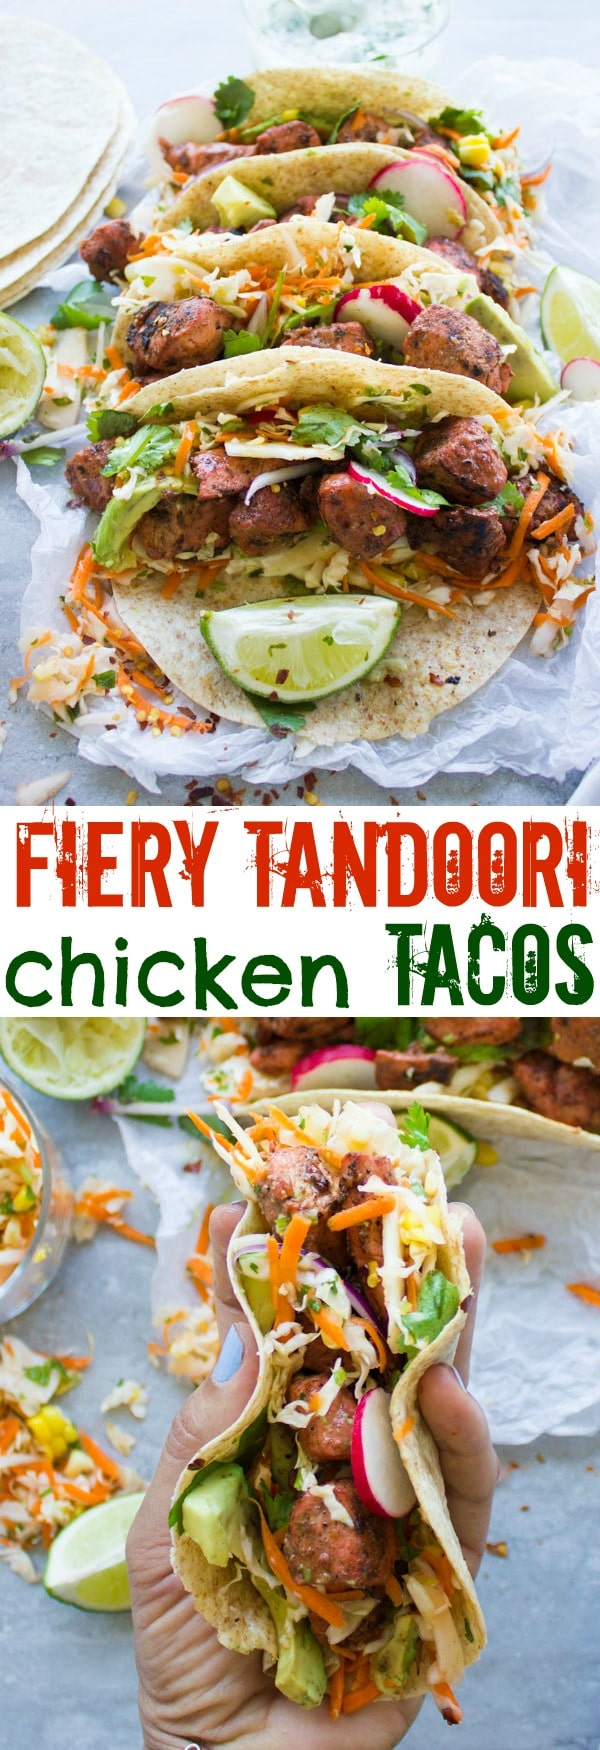 India meets Mexico in these Fiery Tandoori Chicken Tacos paired with a refreshing Cilantro Corn Slaw! A must-try for taco lovers who are looking for new ways to enjoy their favorite Mexican street food! #tacotuesday, #chickentacos, #tacorecipes, #chickenrecipes, #tandoorichicken